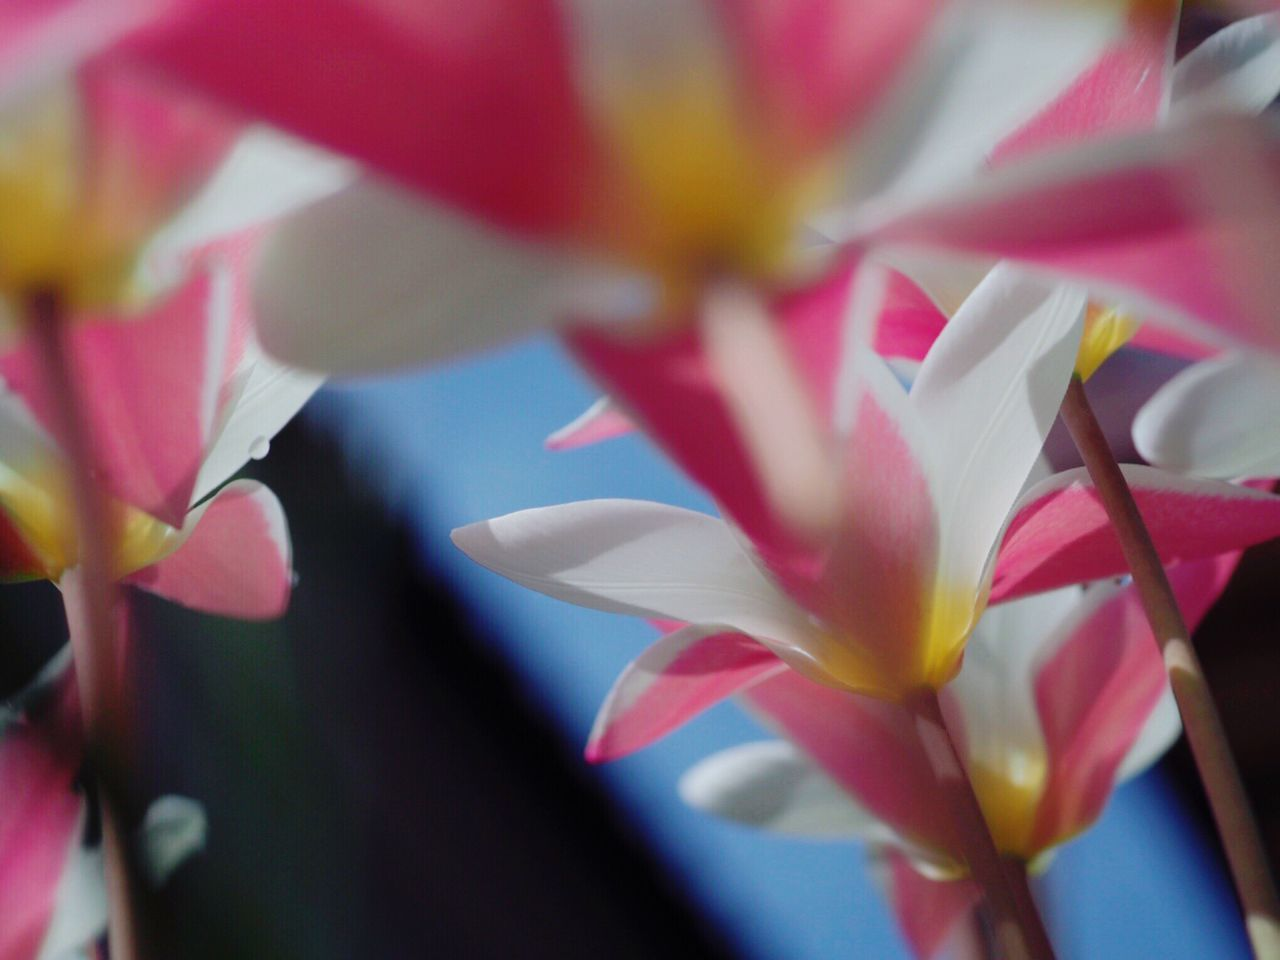 flower, petal, beauty in nature, fragility, nature, growth, freshness, no people, close-up, flower head, blooming, day, outdoors, frangipani